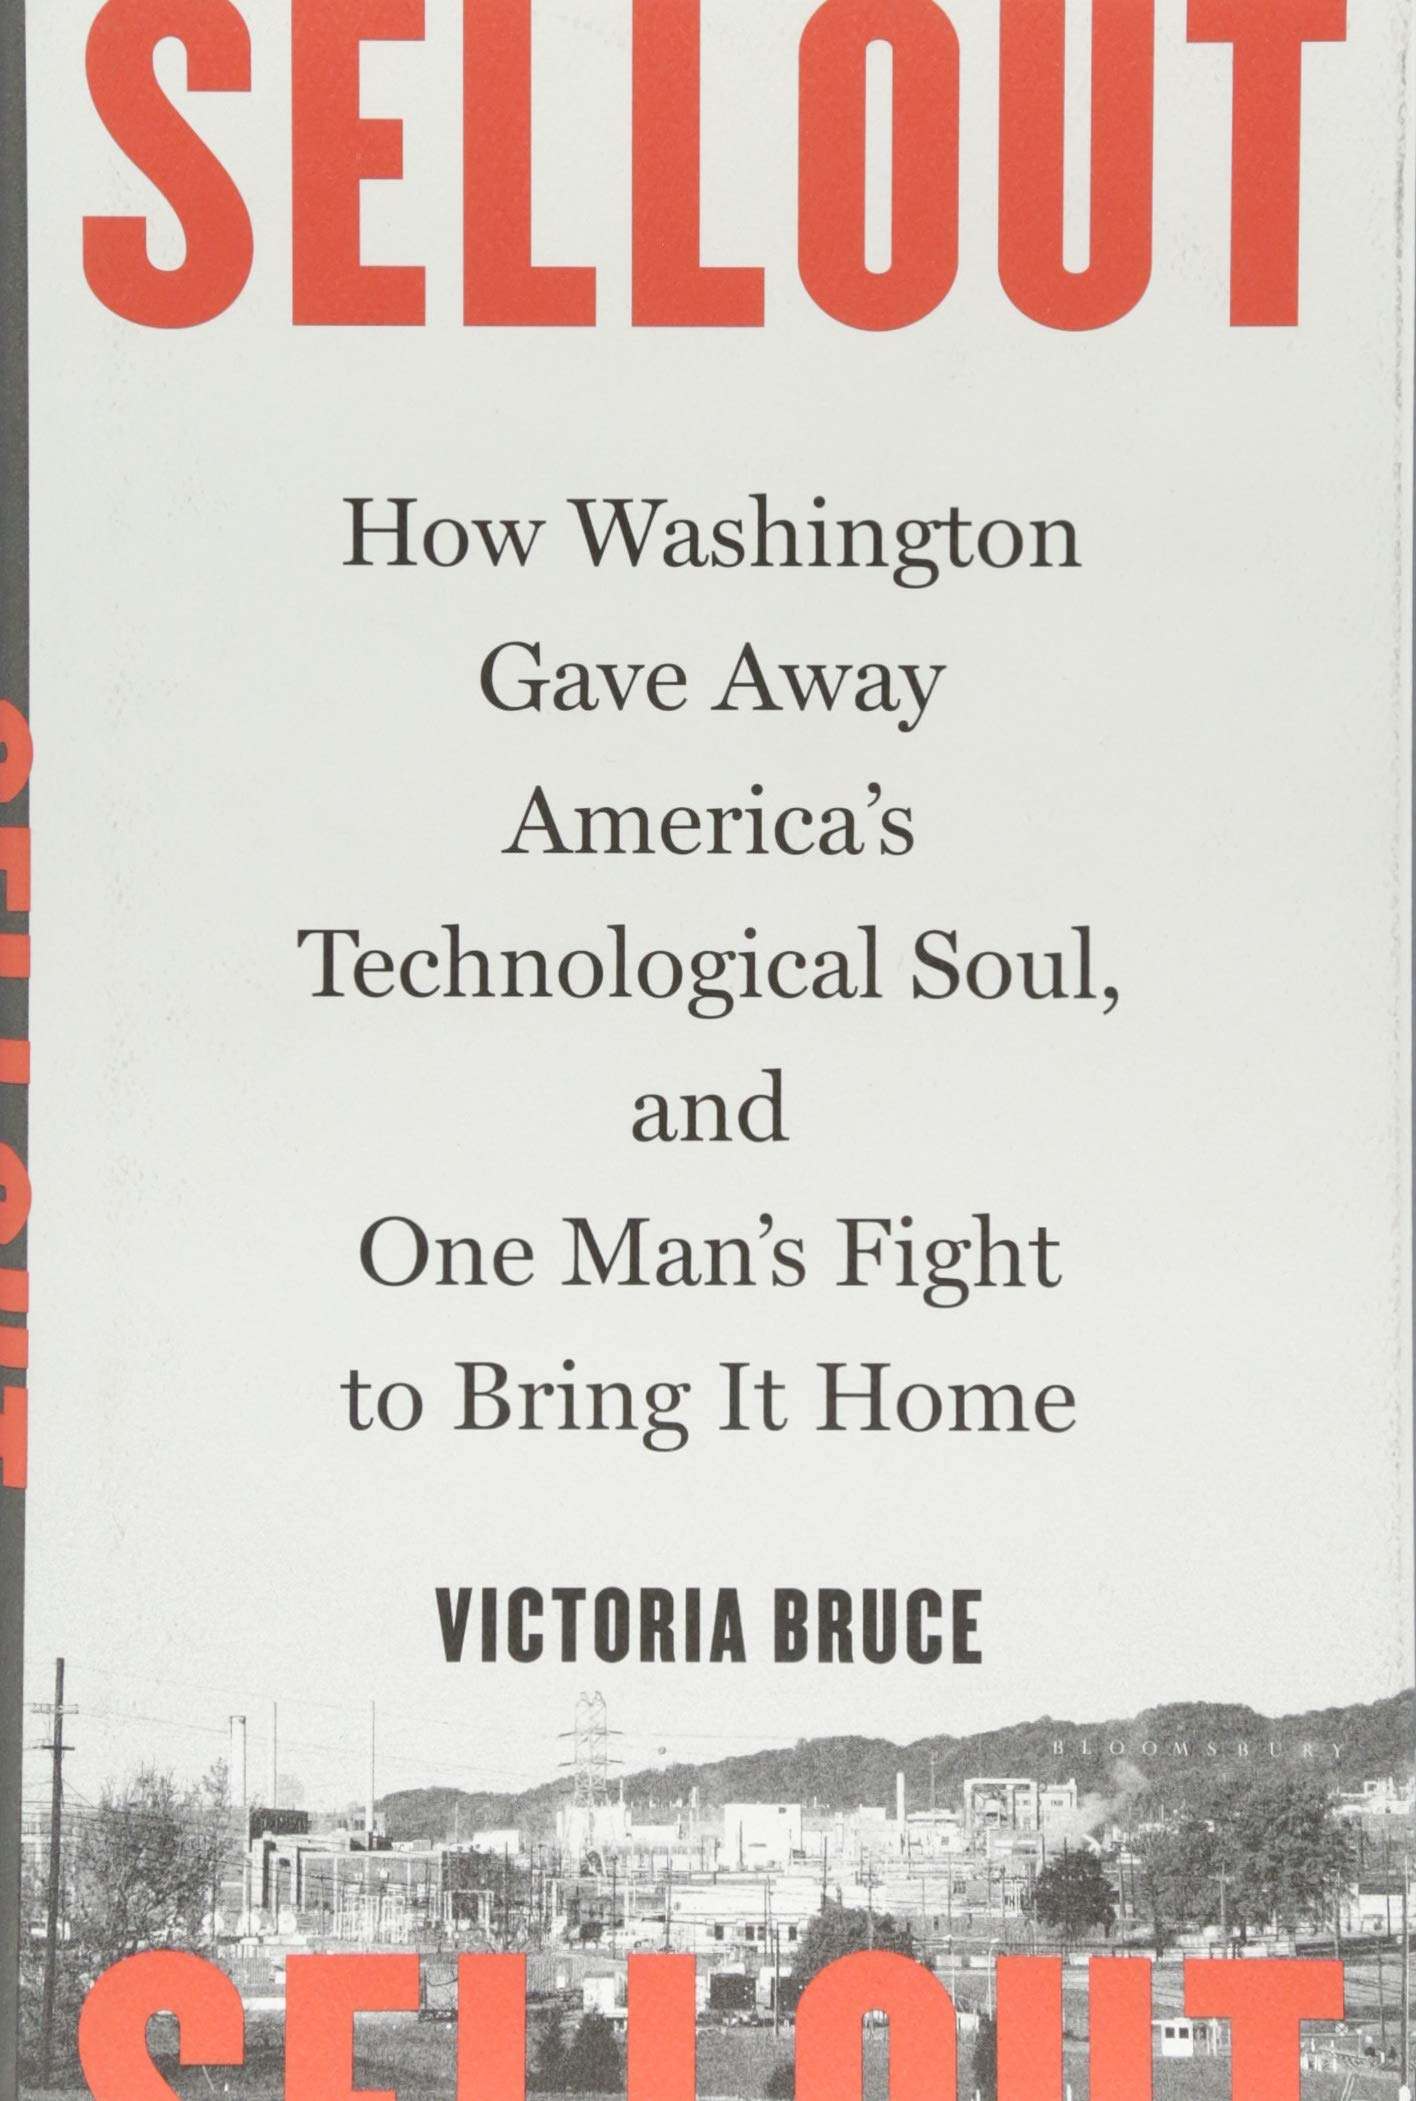 Sellout: How Washington Gave Away America's Technological Soul, and One Man's Fight to Bring It Home